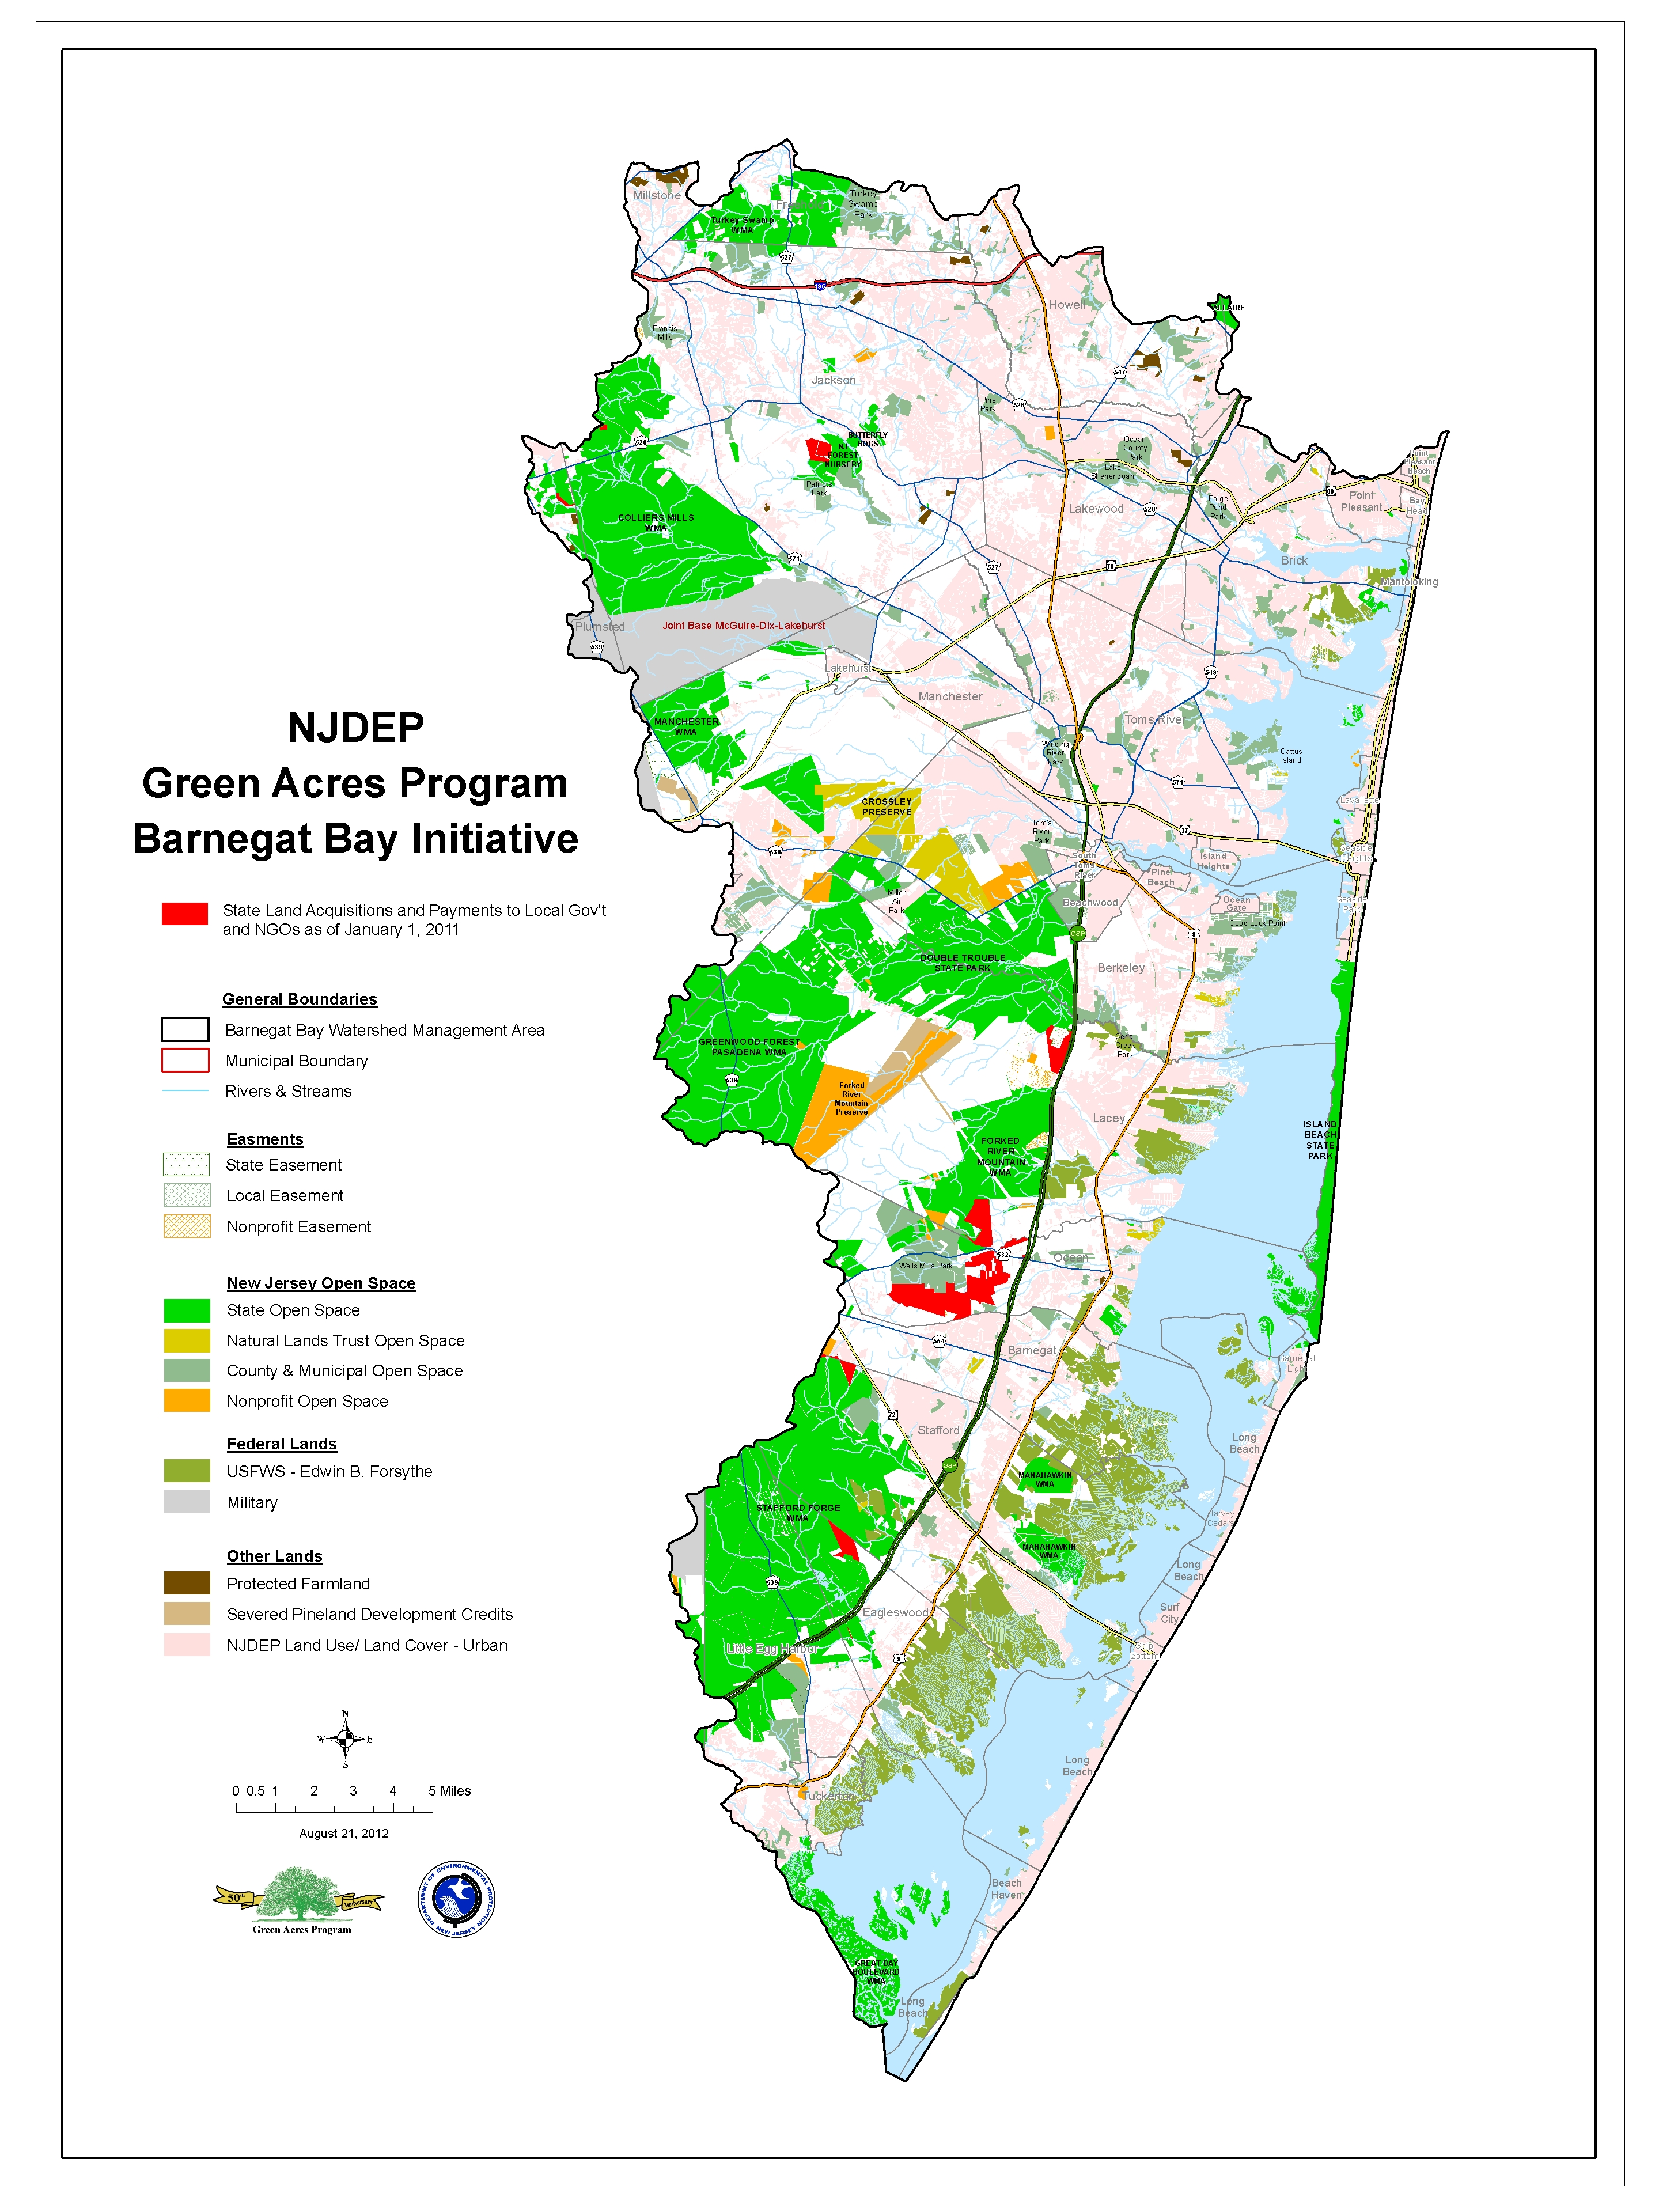 Green Acres Land Acquisition In Barnegat Bay